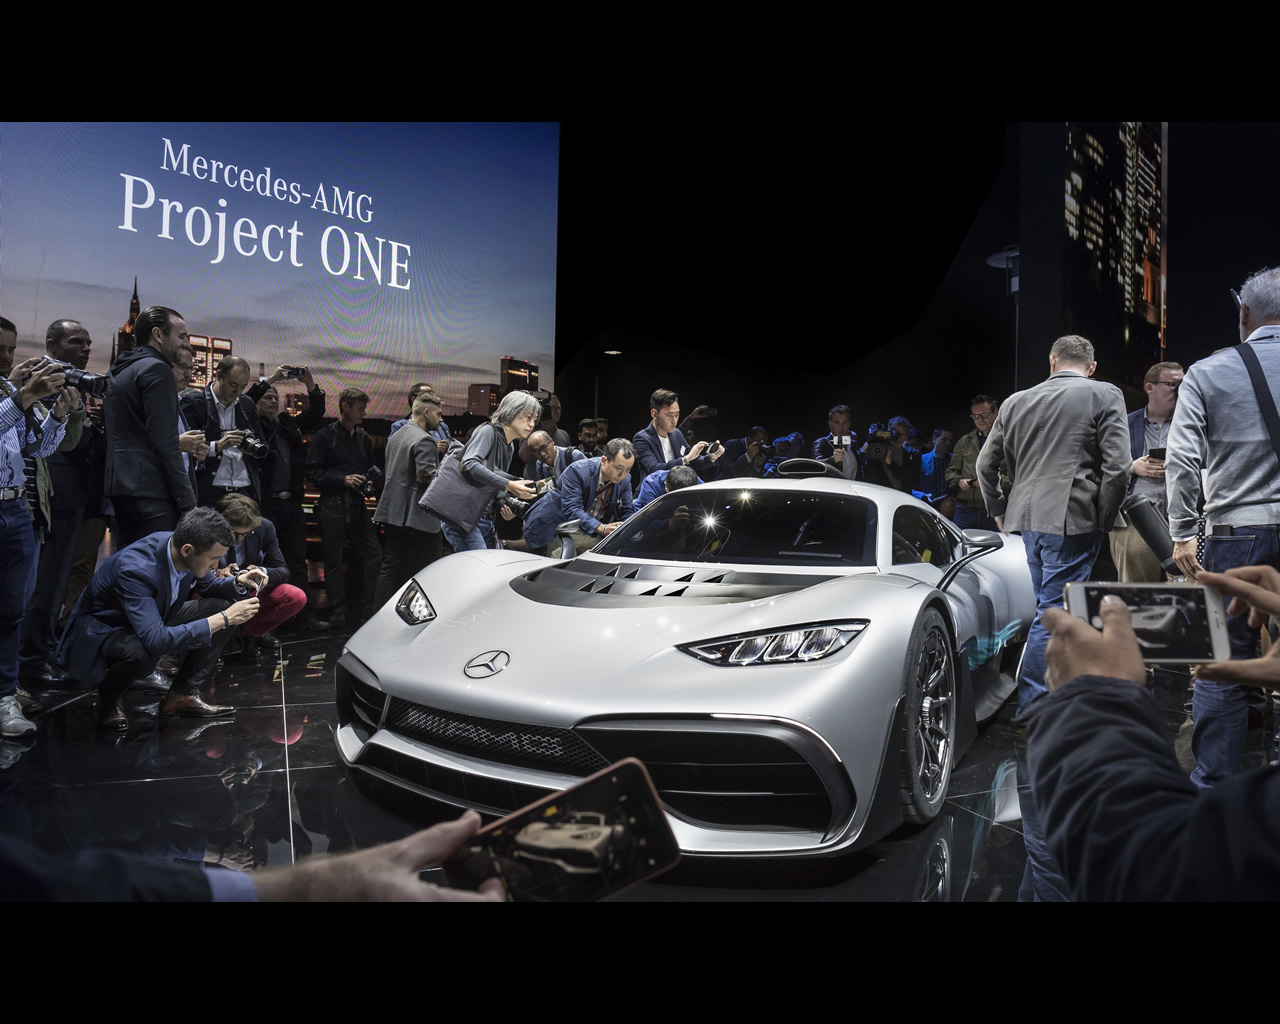 http://autoconcept-reviews.com/cars_reviews/mercedes/mercedes-amg-project-one-2017/wallpapers/mercedes-amg-project-one-2017-7.jpg